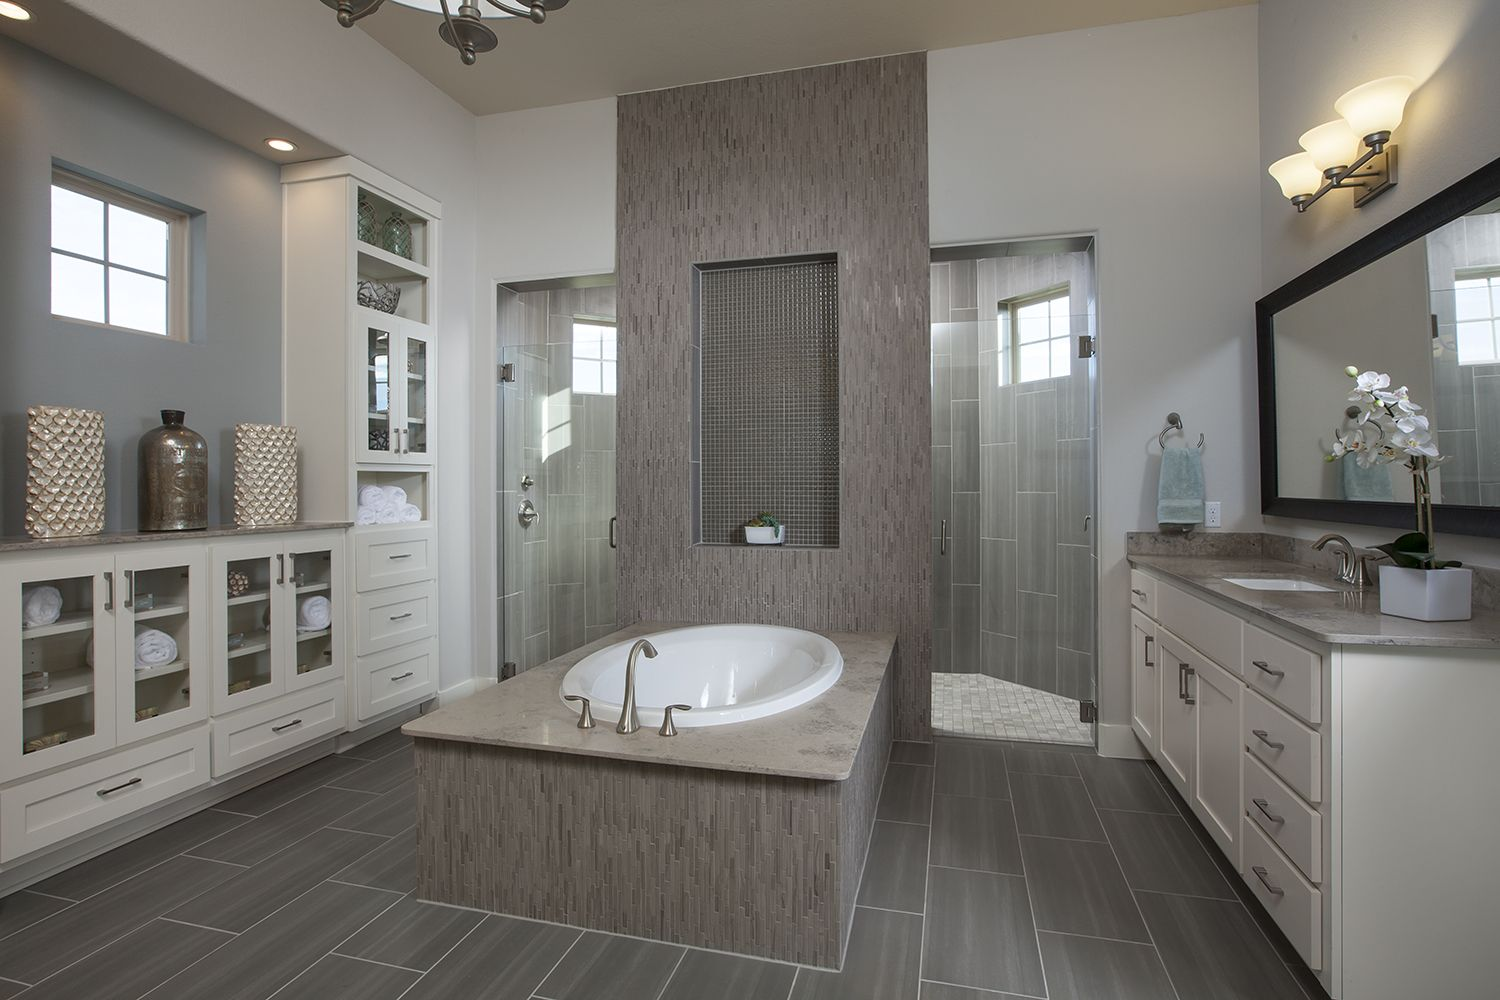 Coventry homes in rim rock master bathroom featuring a